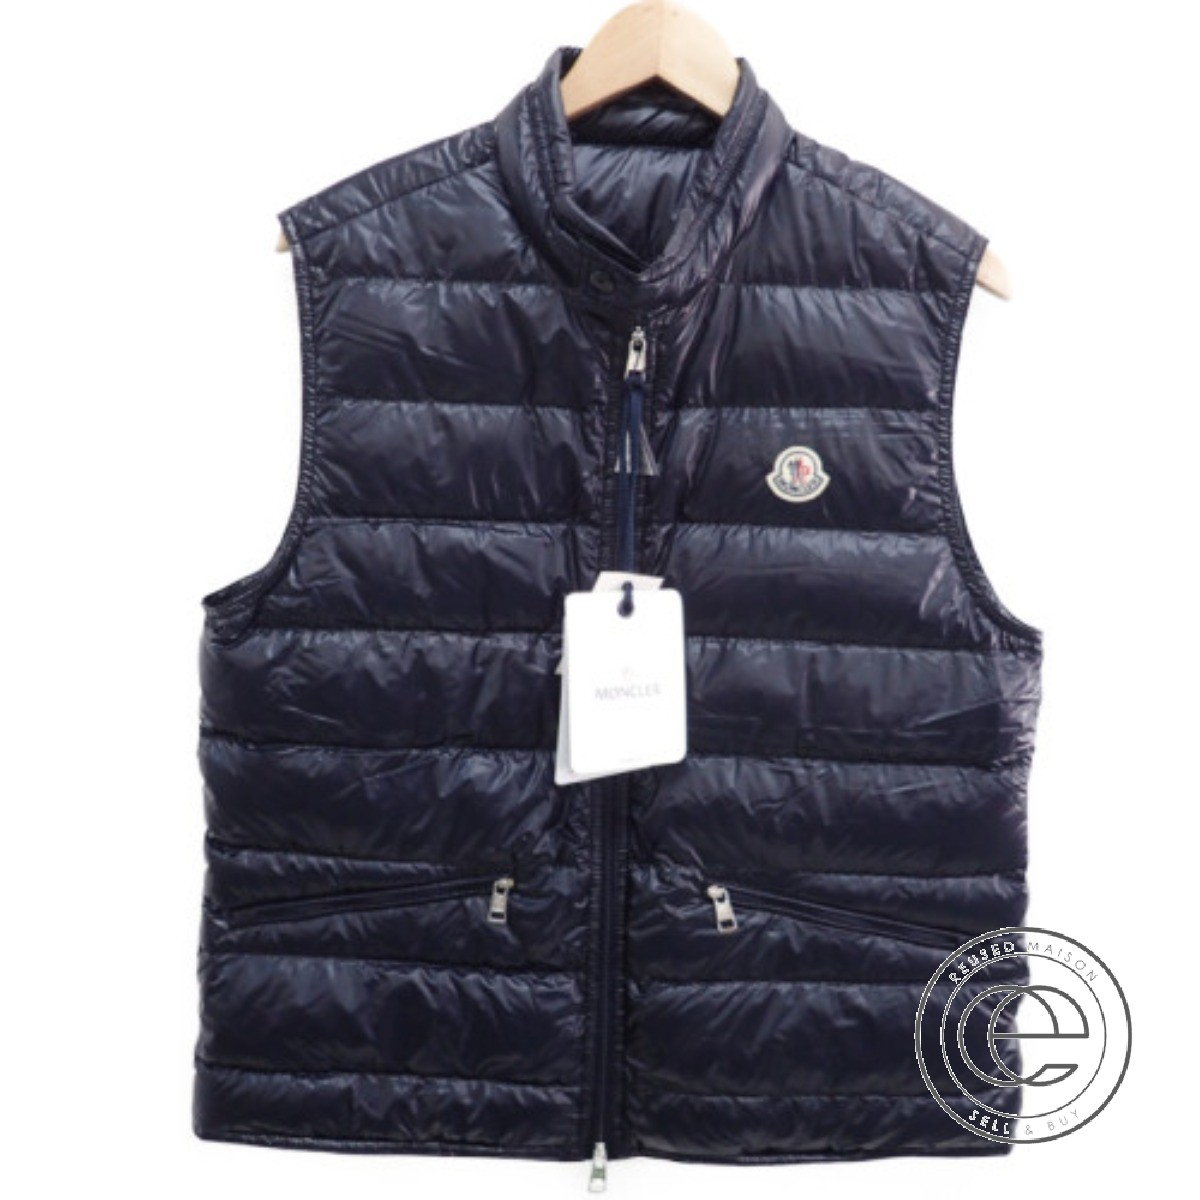 61109d128 MONCLER Monk rail GUI LONGUE SAISON stand collar down vest 3 jacket dark  navy men